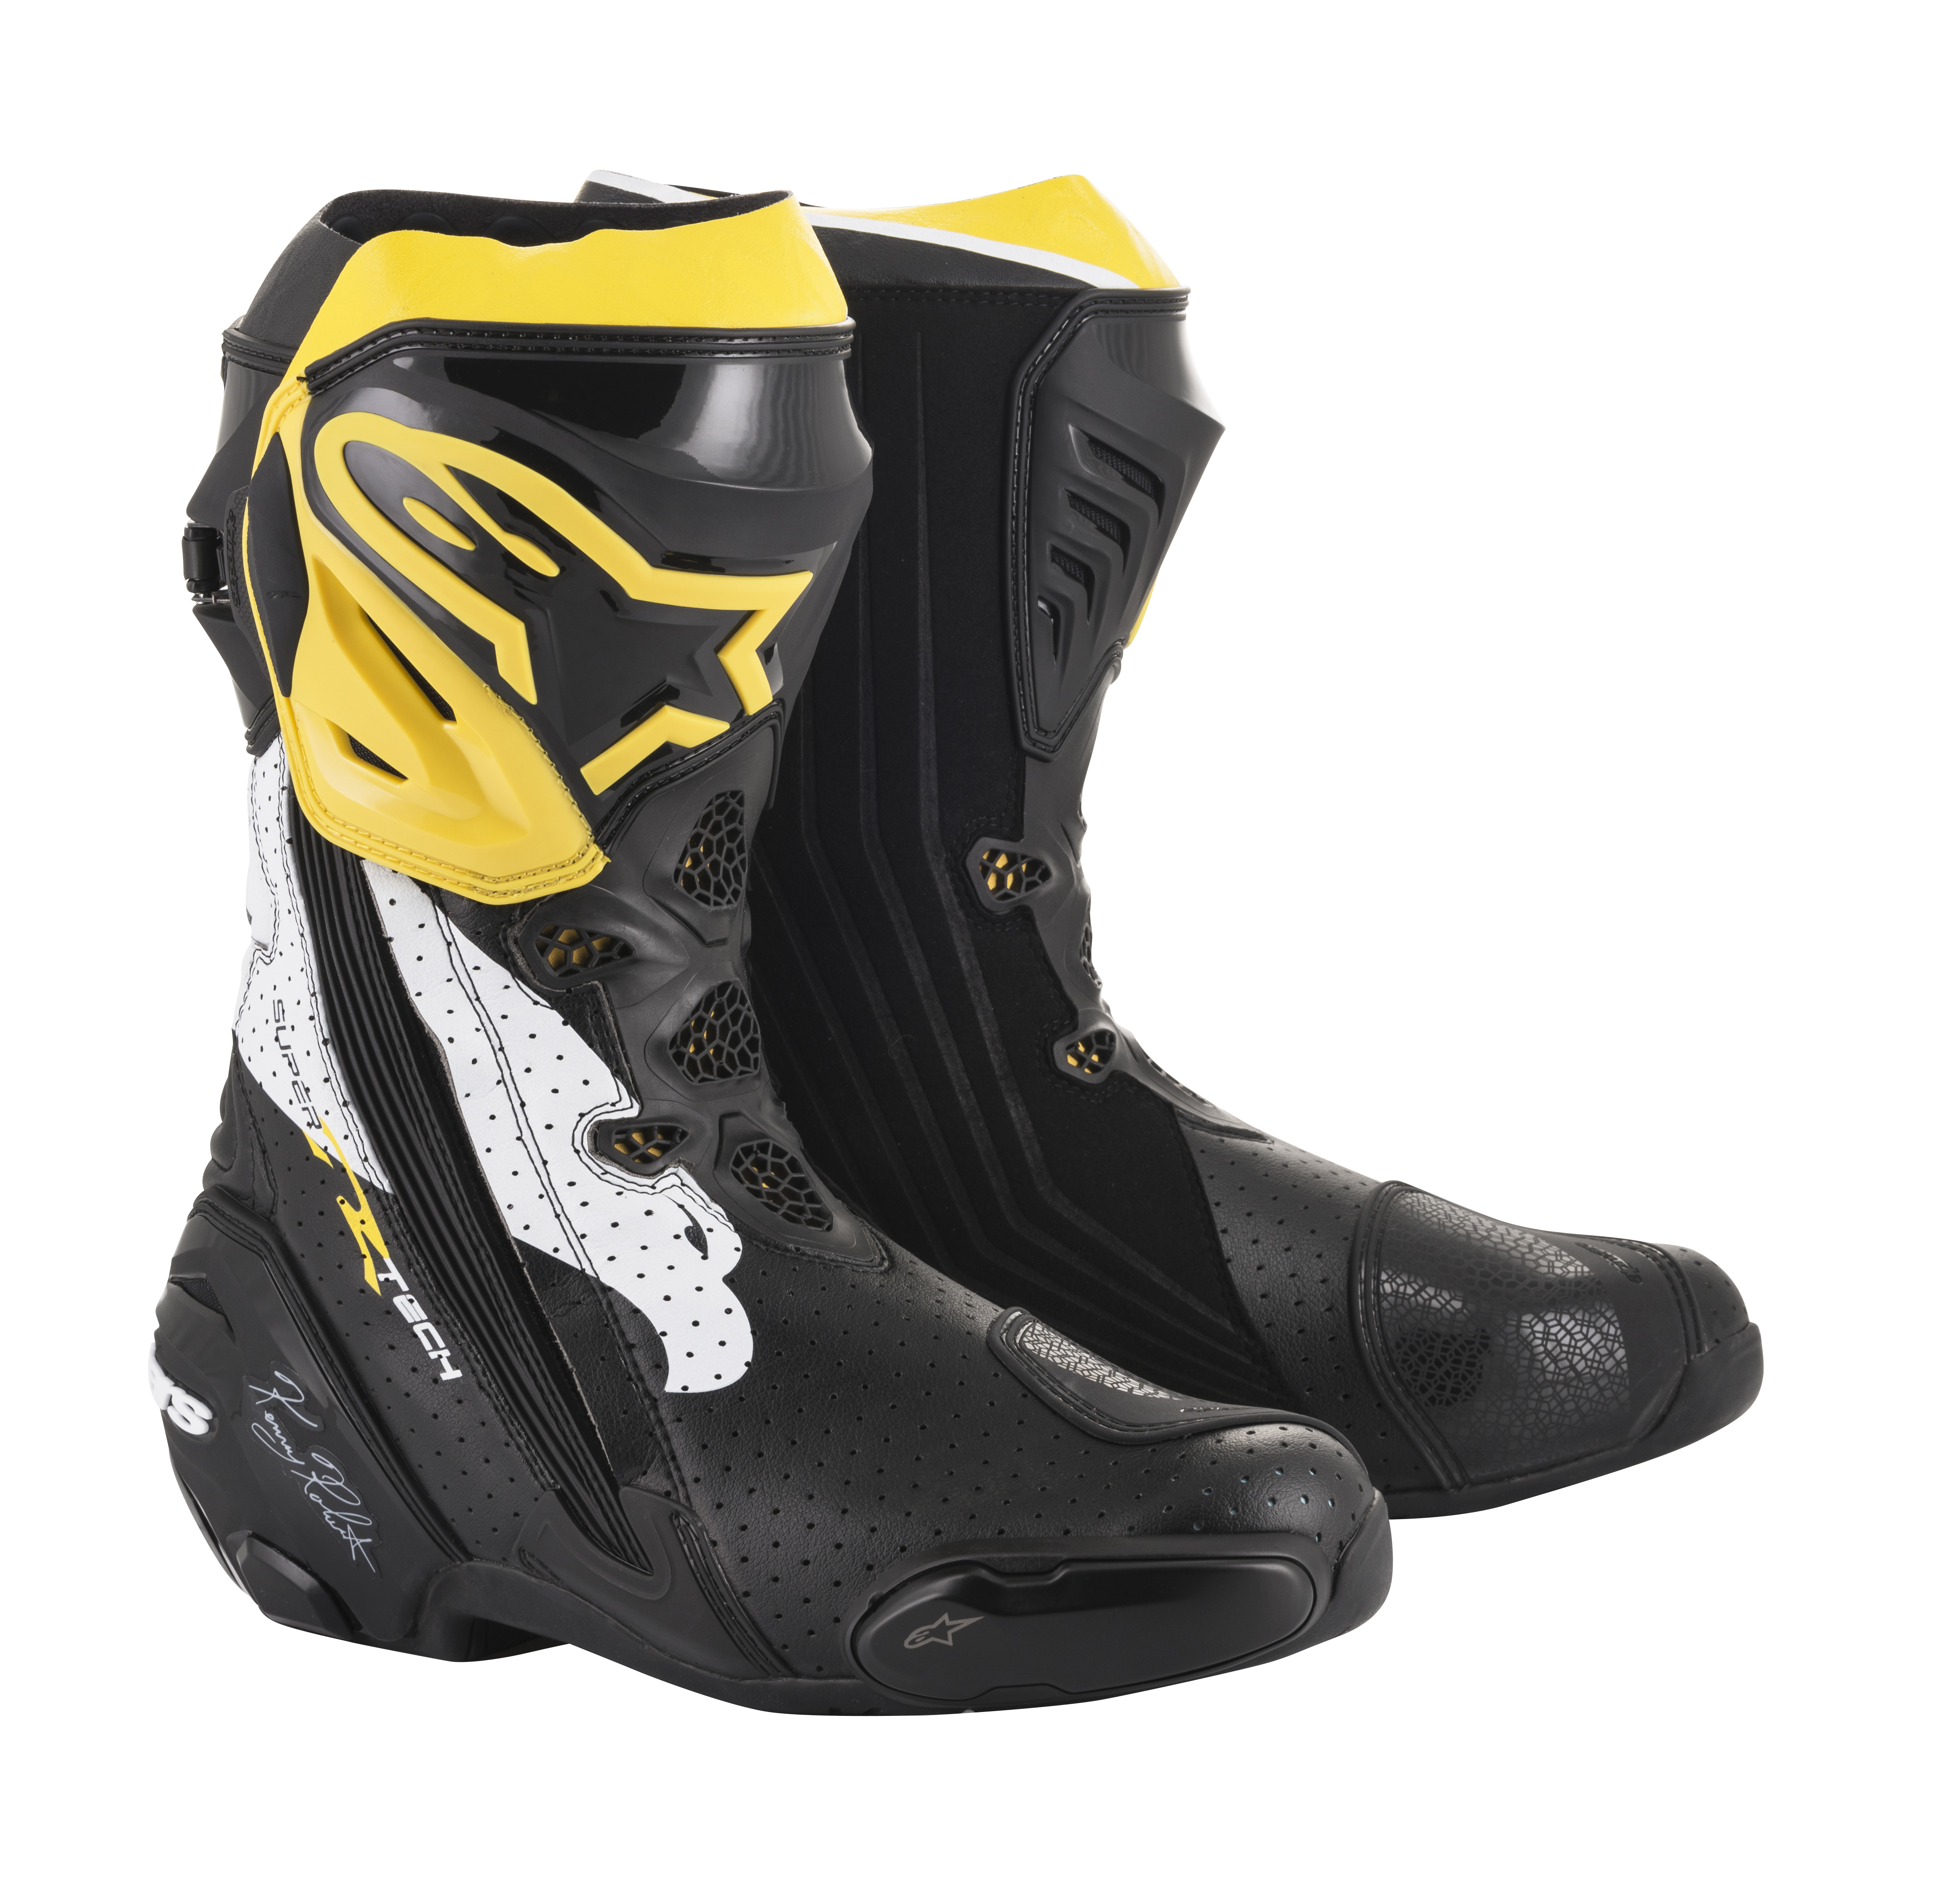 2220015-1522-fr_limited-edition-kenny-roberts-supertech-r-boot